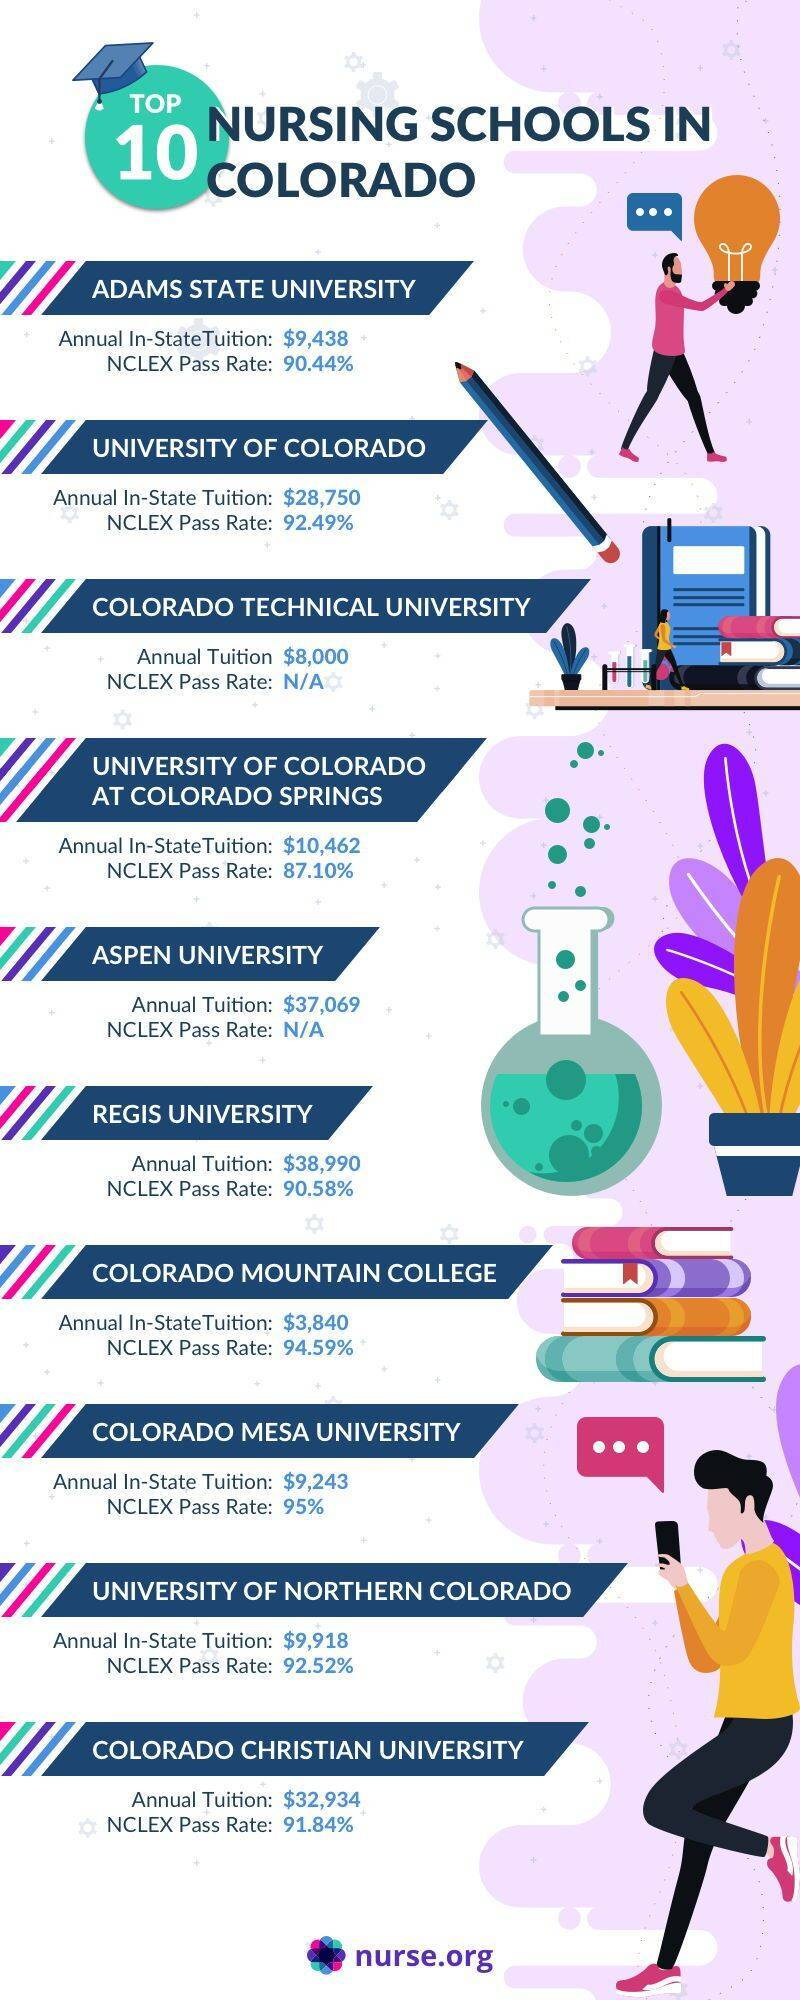 Infographic comparing the top nursing schools in Colorado